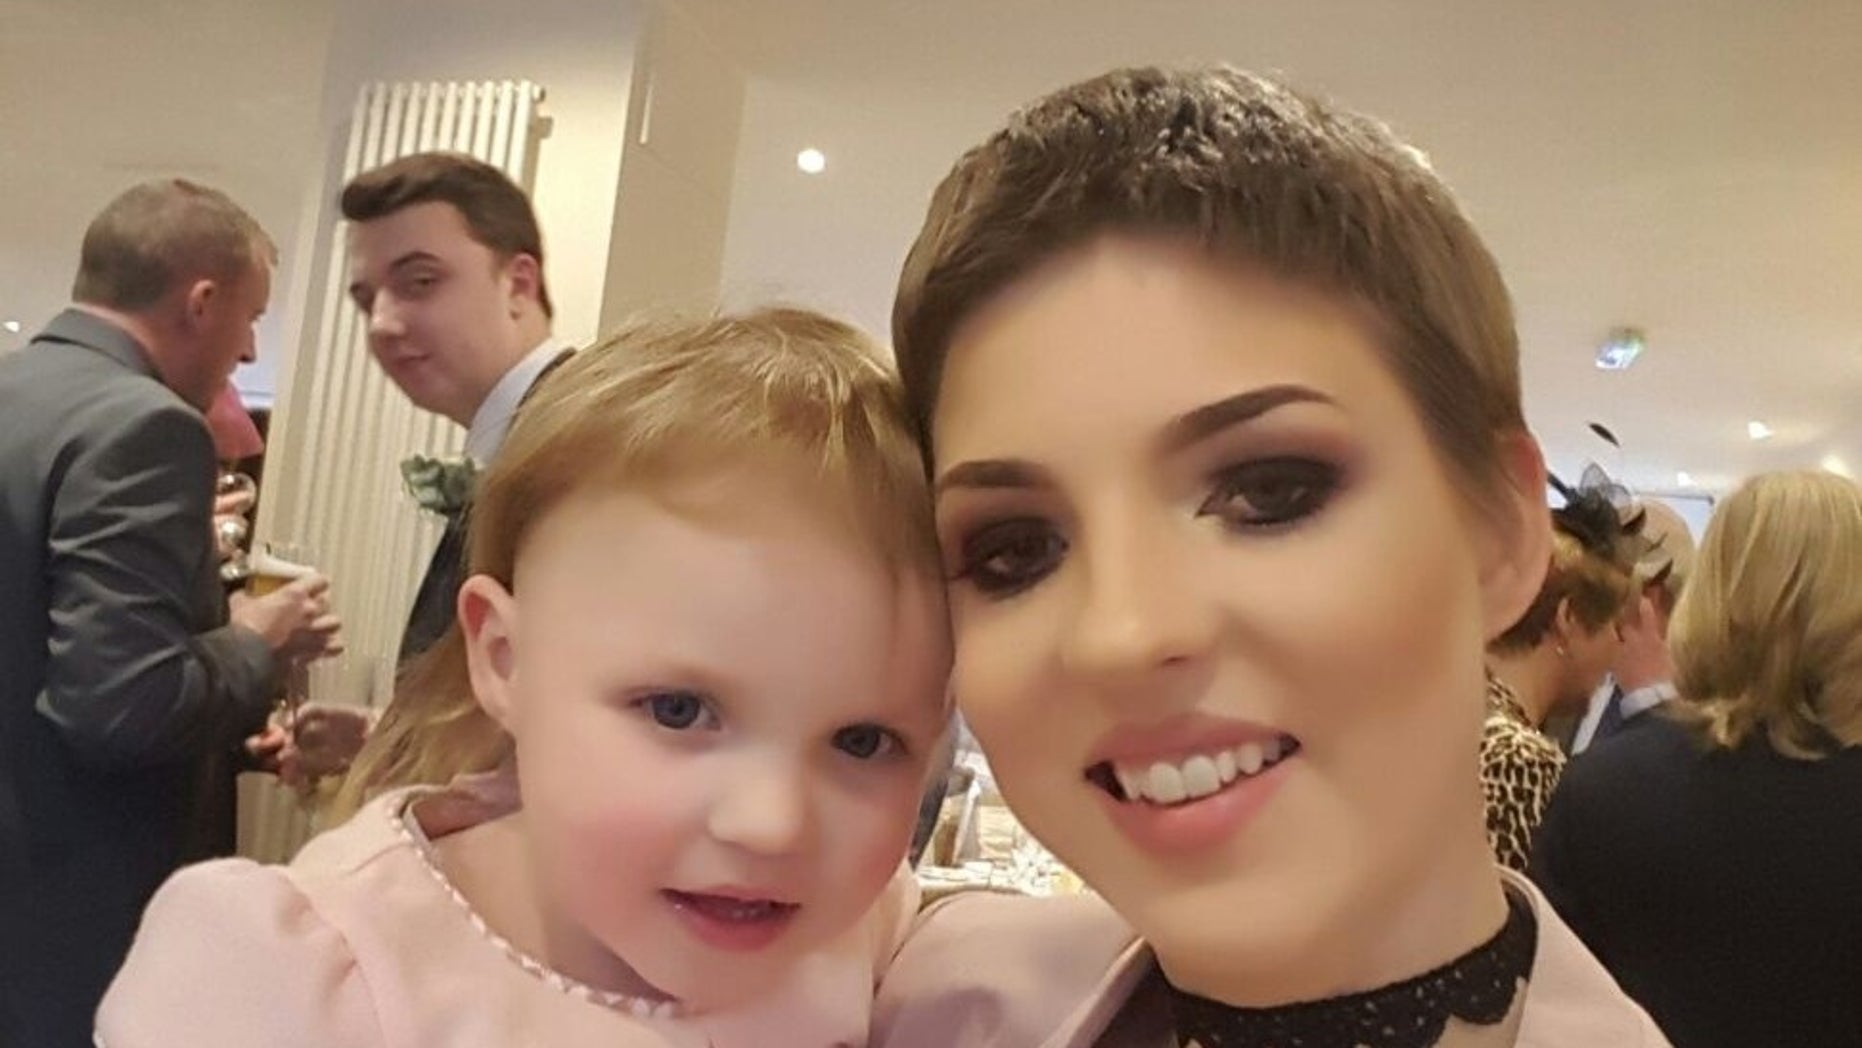 Gemma, pictured with her daughter, discovered she had ovarian cancer while 16 weeks pregnant.